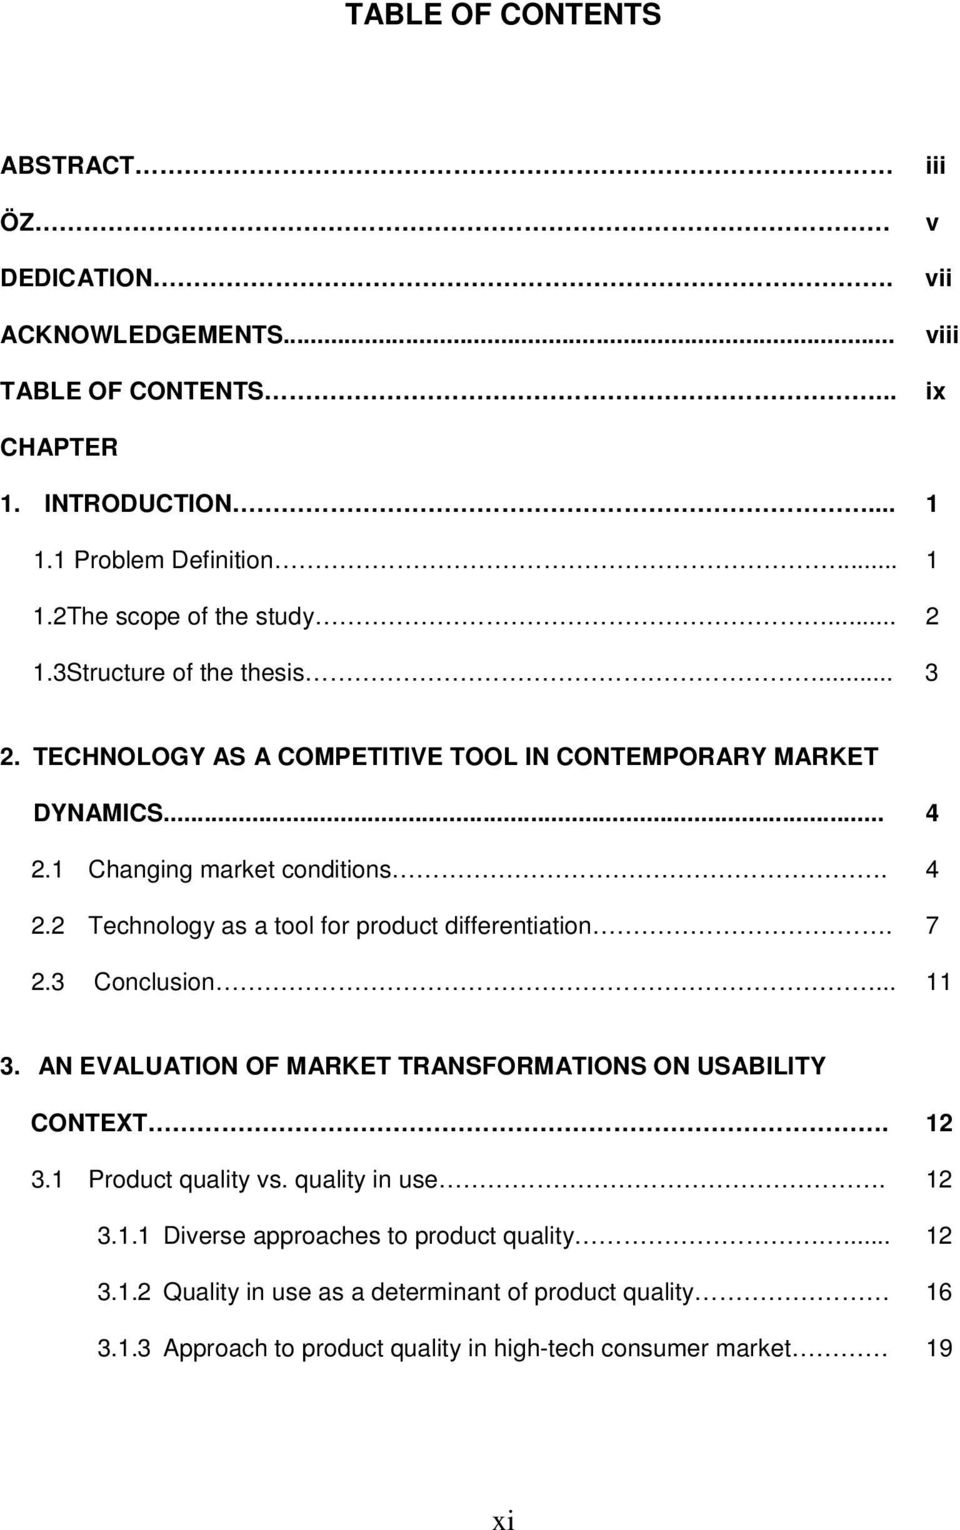 7 2.3 Conclusion... 11 3. AN EVALUATION OF MARKET TRANSFORMATIONS ON USABILITY CONTEXT. 12 3.1 Product quality vs. quality in use. 12 3.1.1 Diverse approaches to product quality.